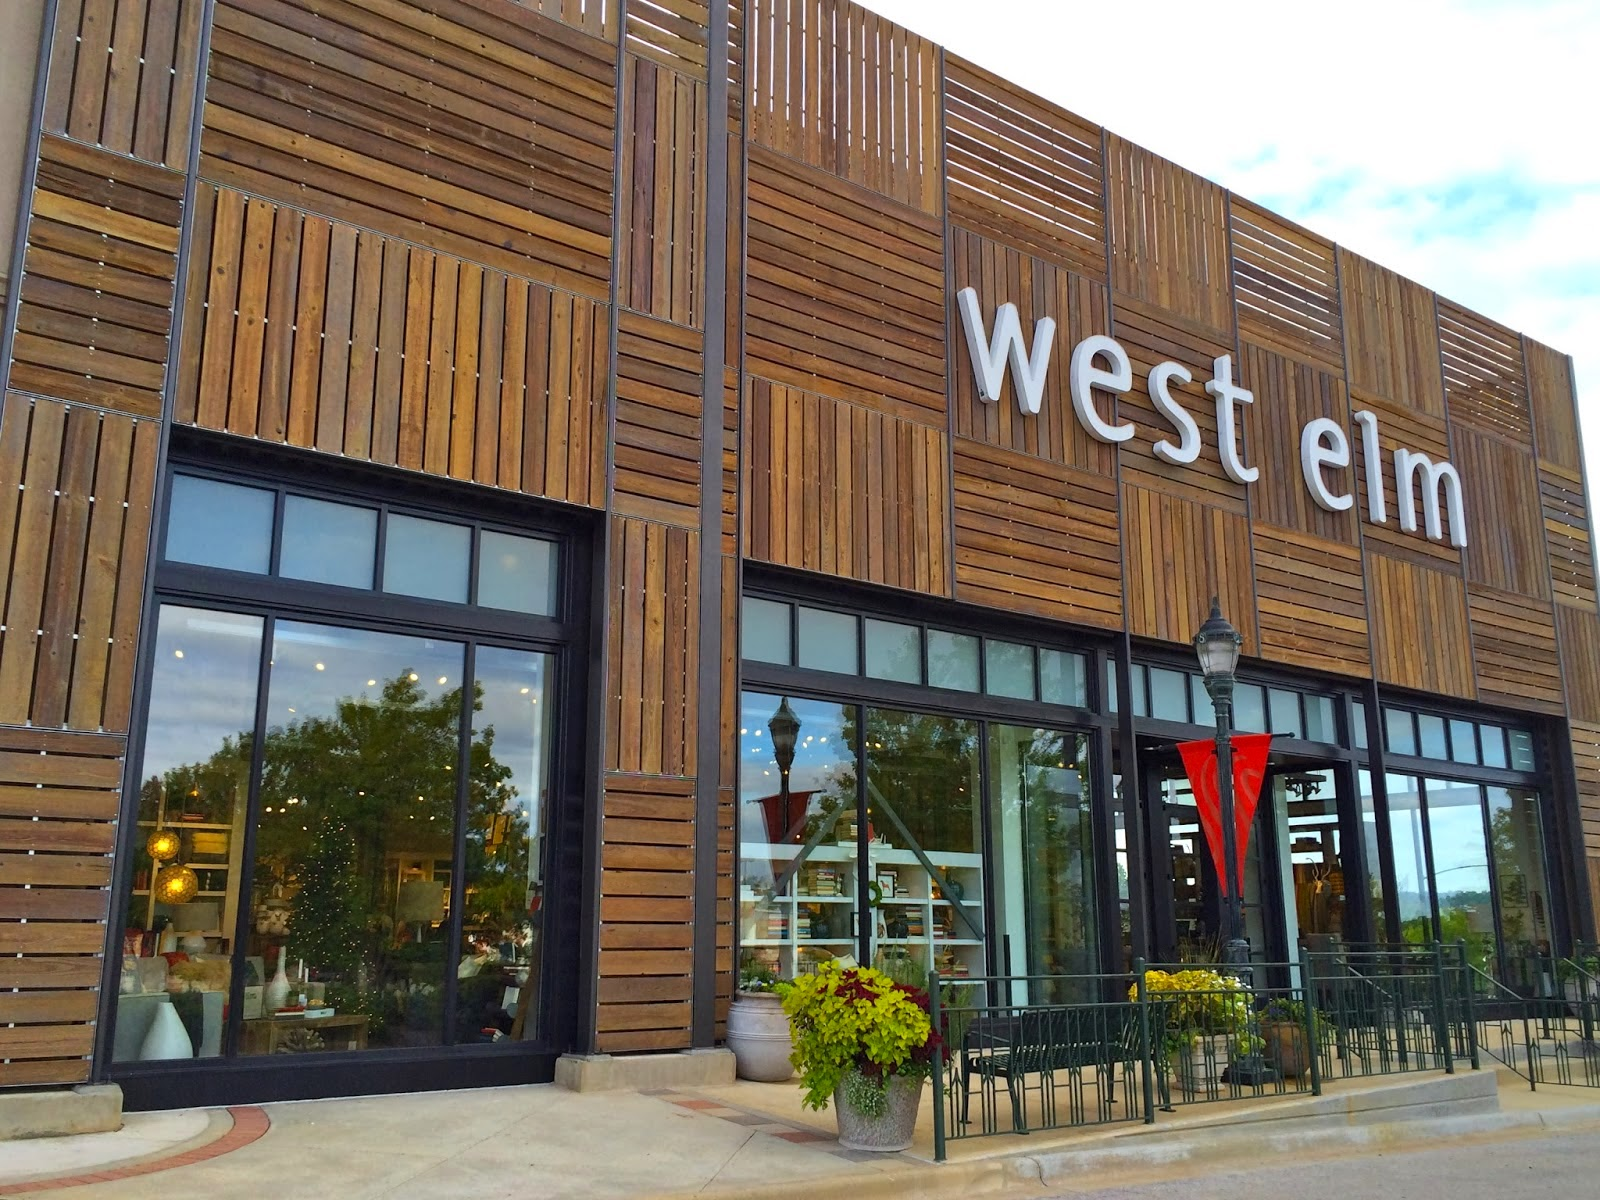 Furniture Warehouse Birmingham West Elm Opens Store In Bellevue The Registry